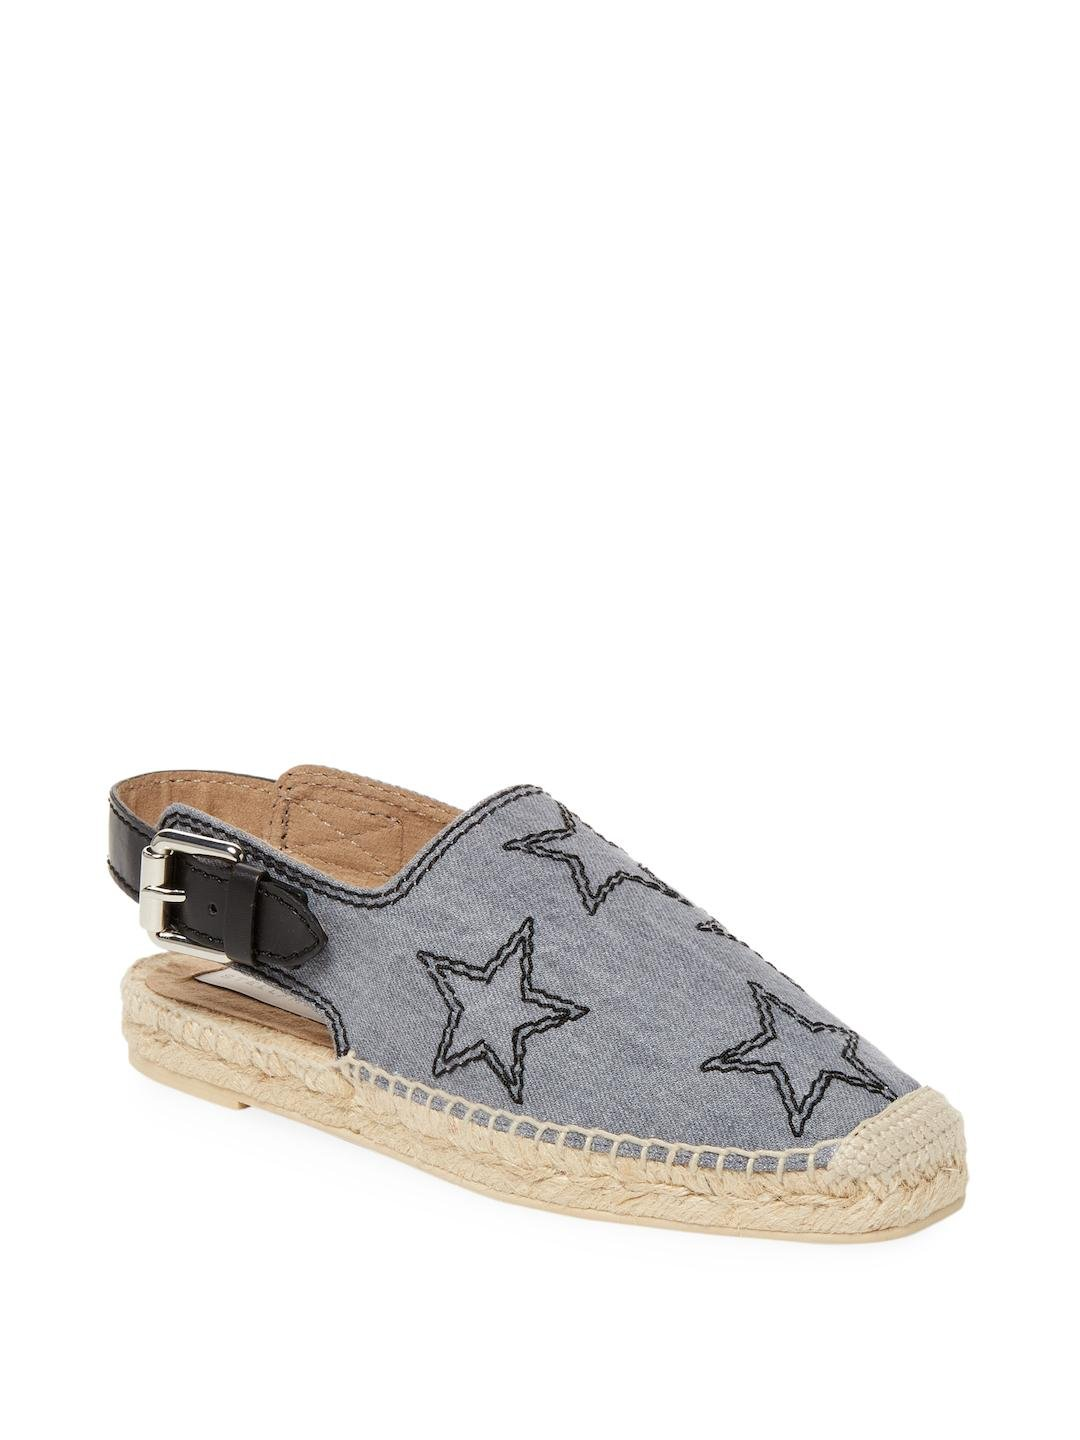 Sneaker Espadrilles in Multicolor Synthetic Fabric Stella McCartney Sale Choice Outlet For Sale UnMjH5Cb